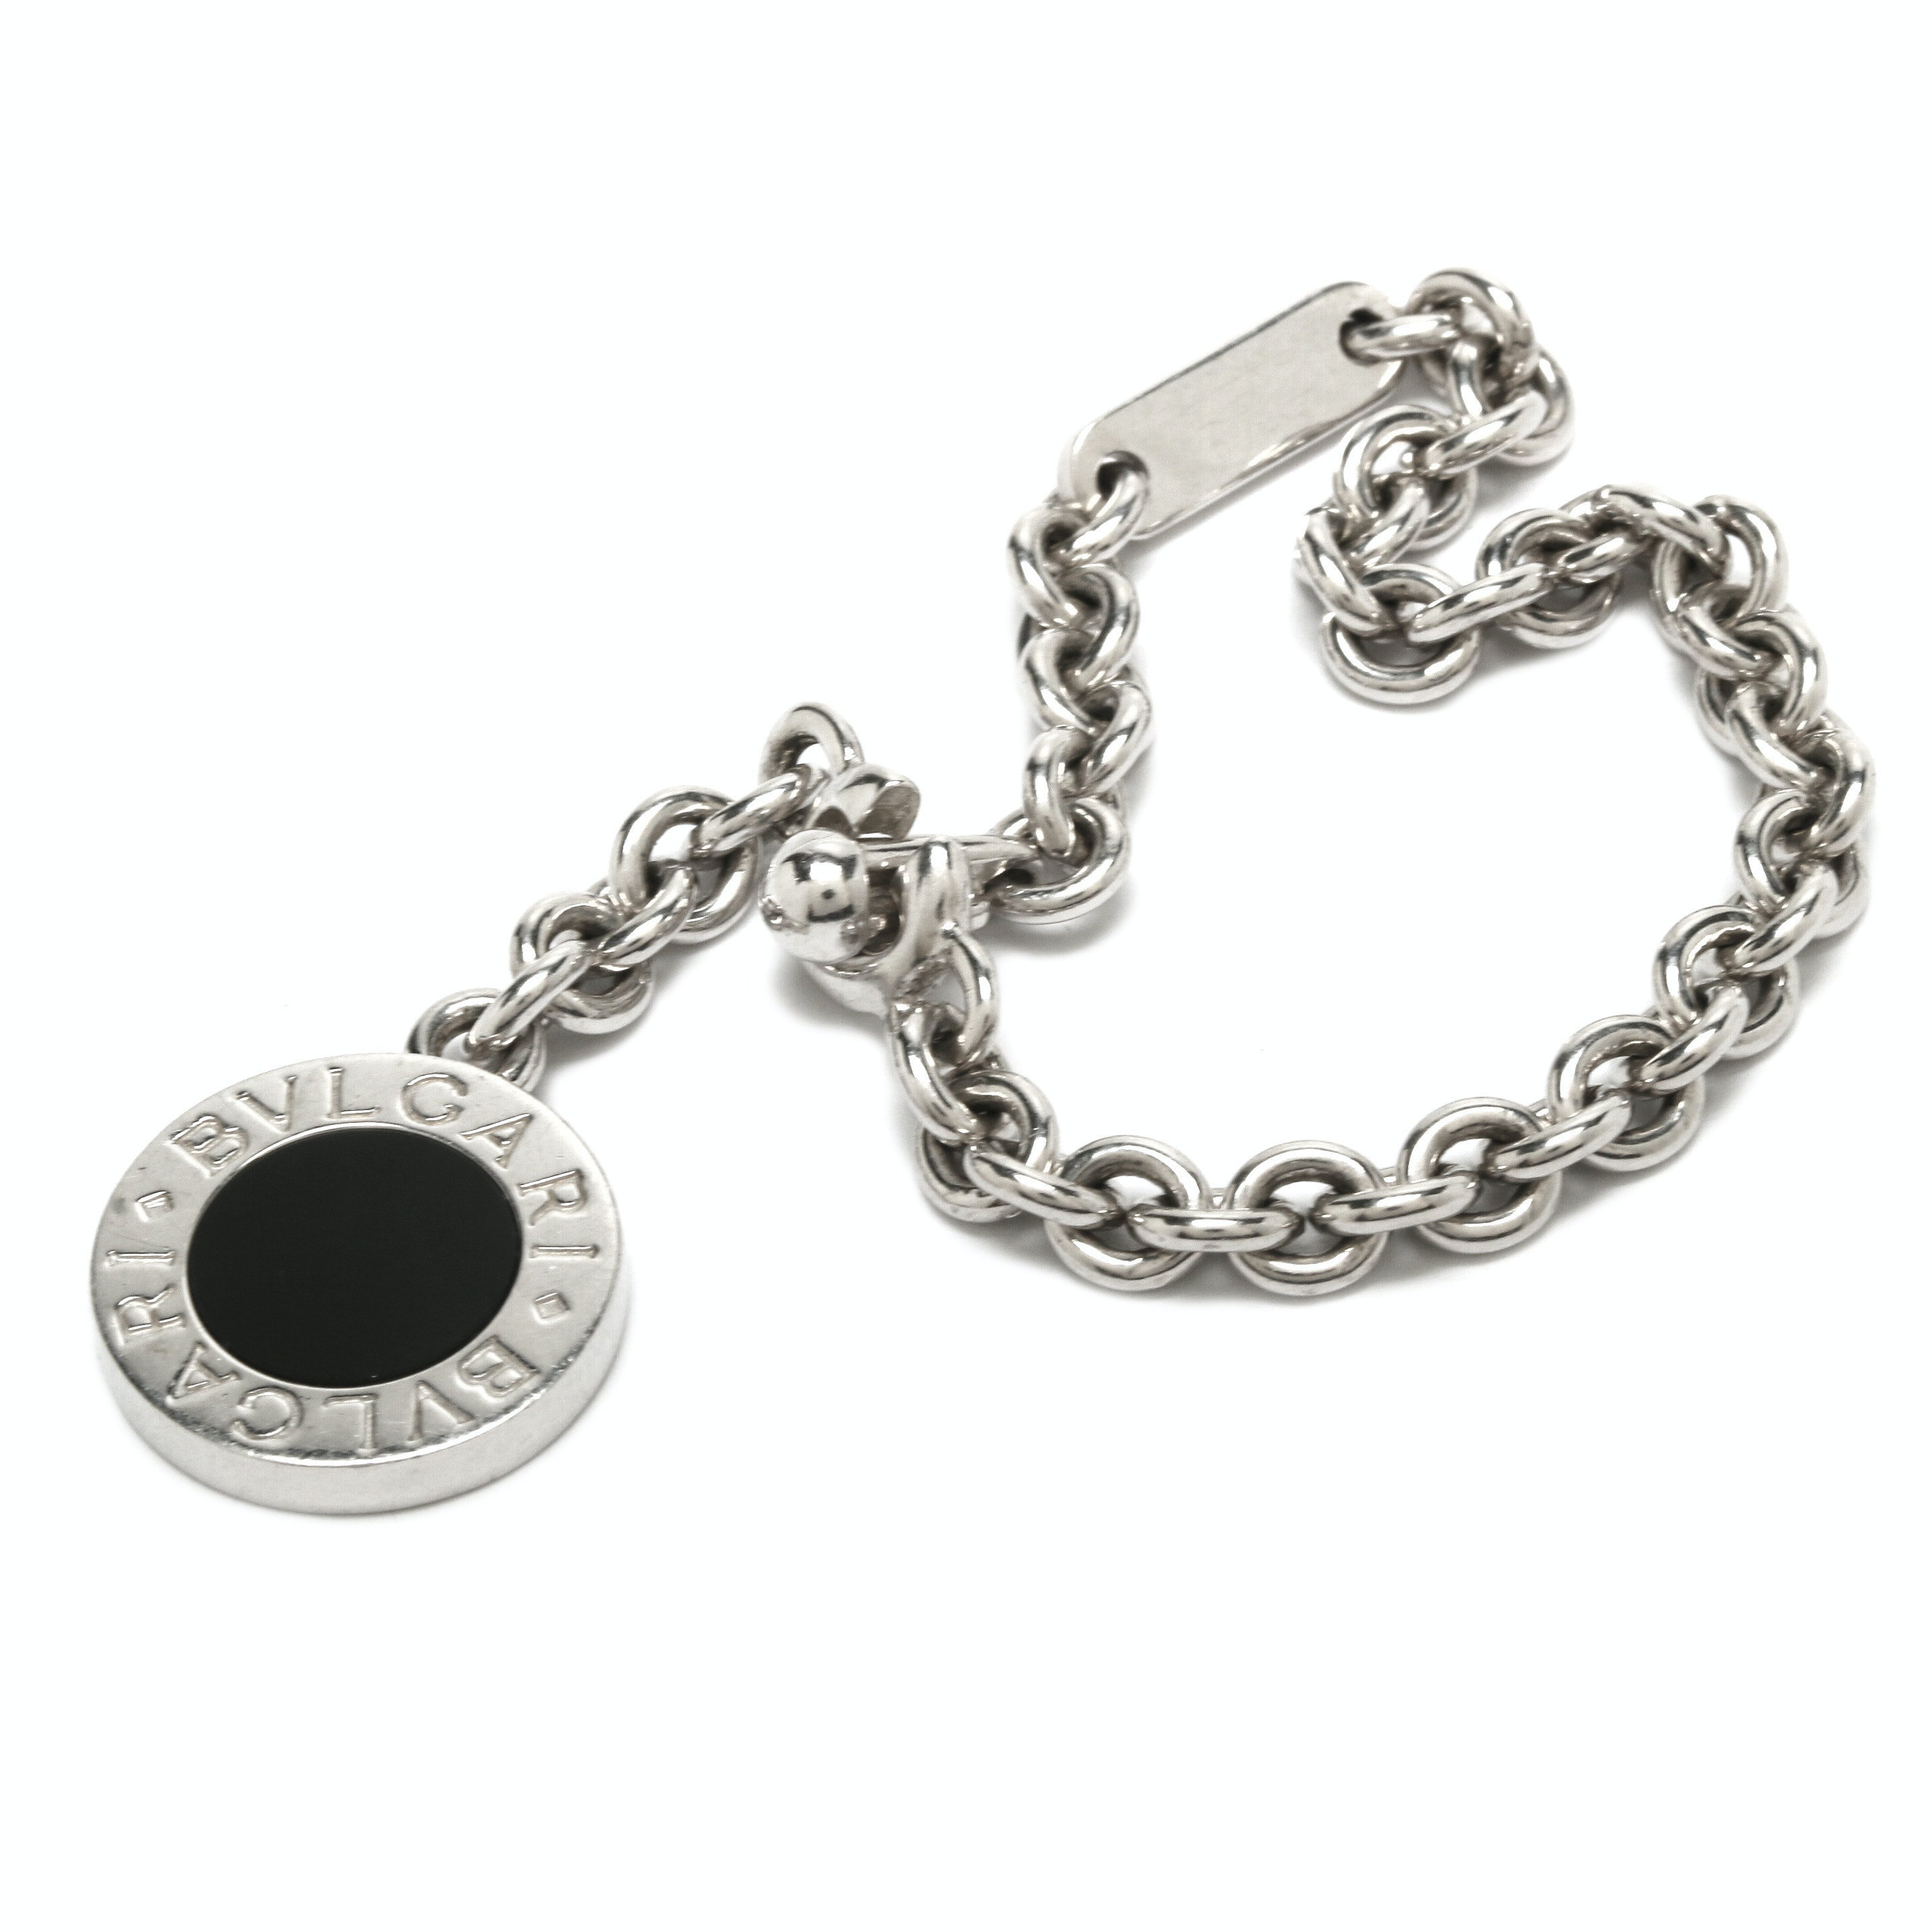 Bulgari Sterling Silver Black Onyx Charm Cable Link Bracelet